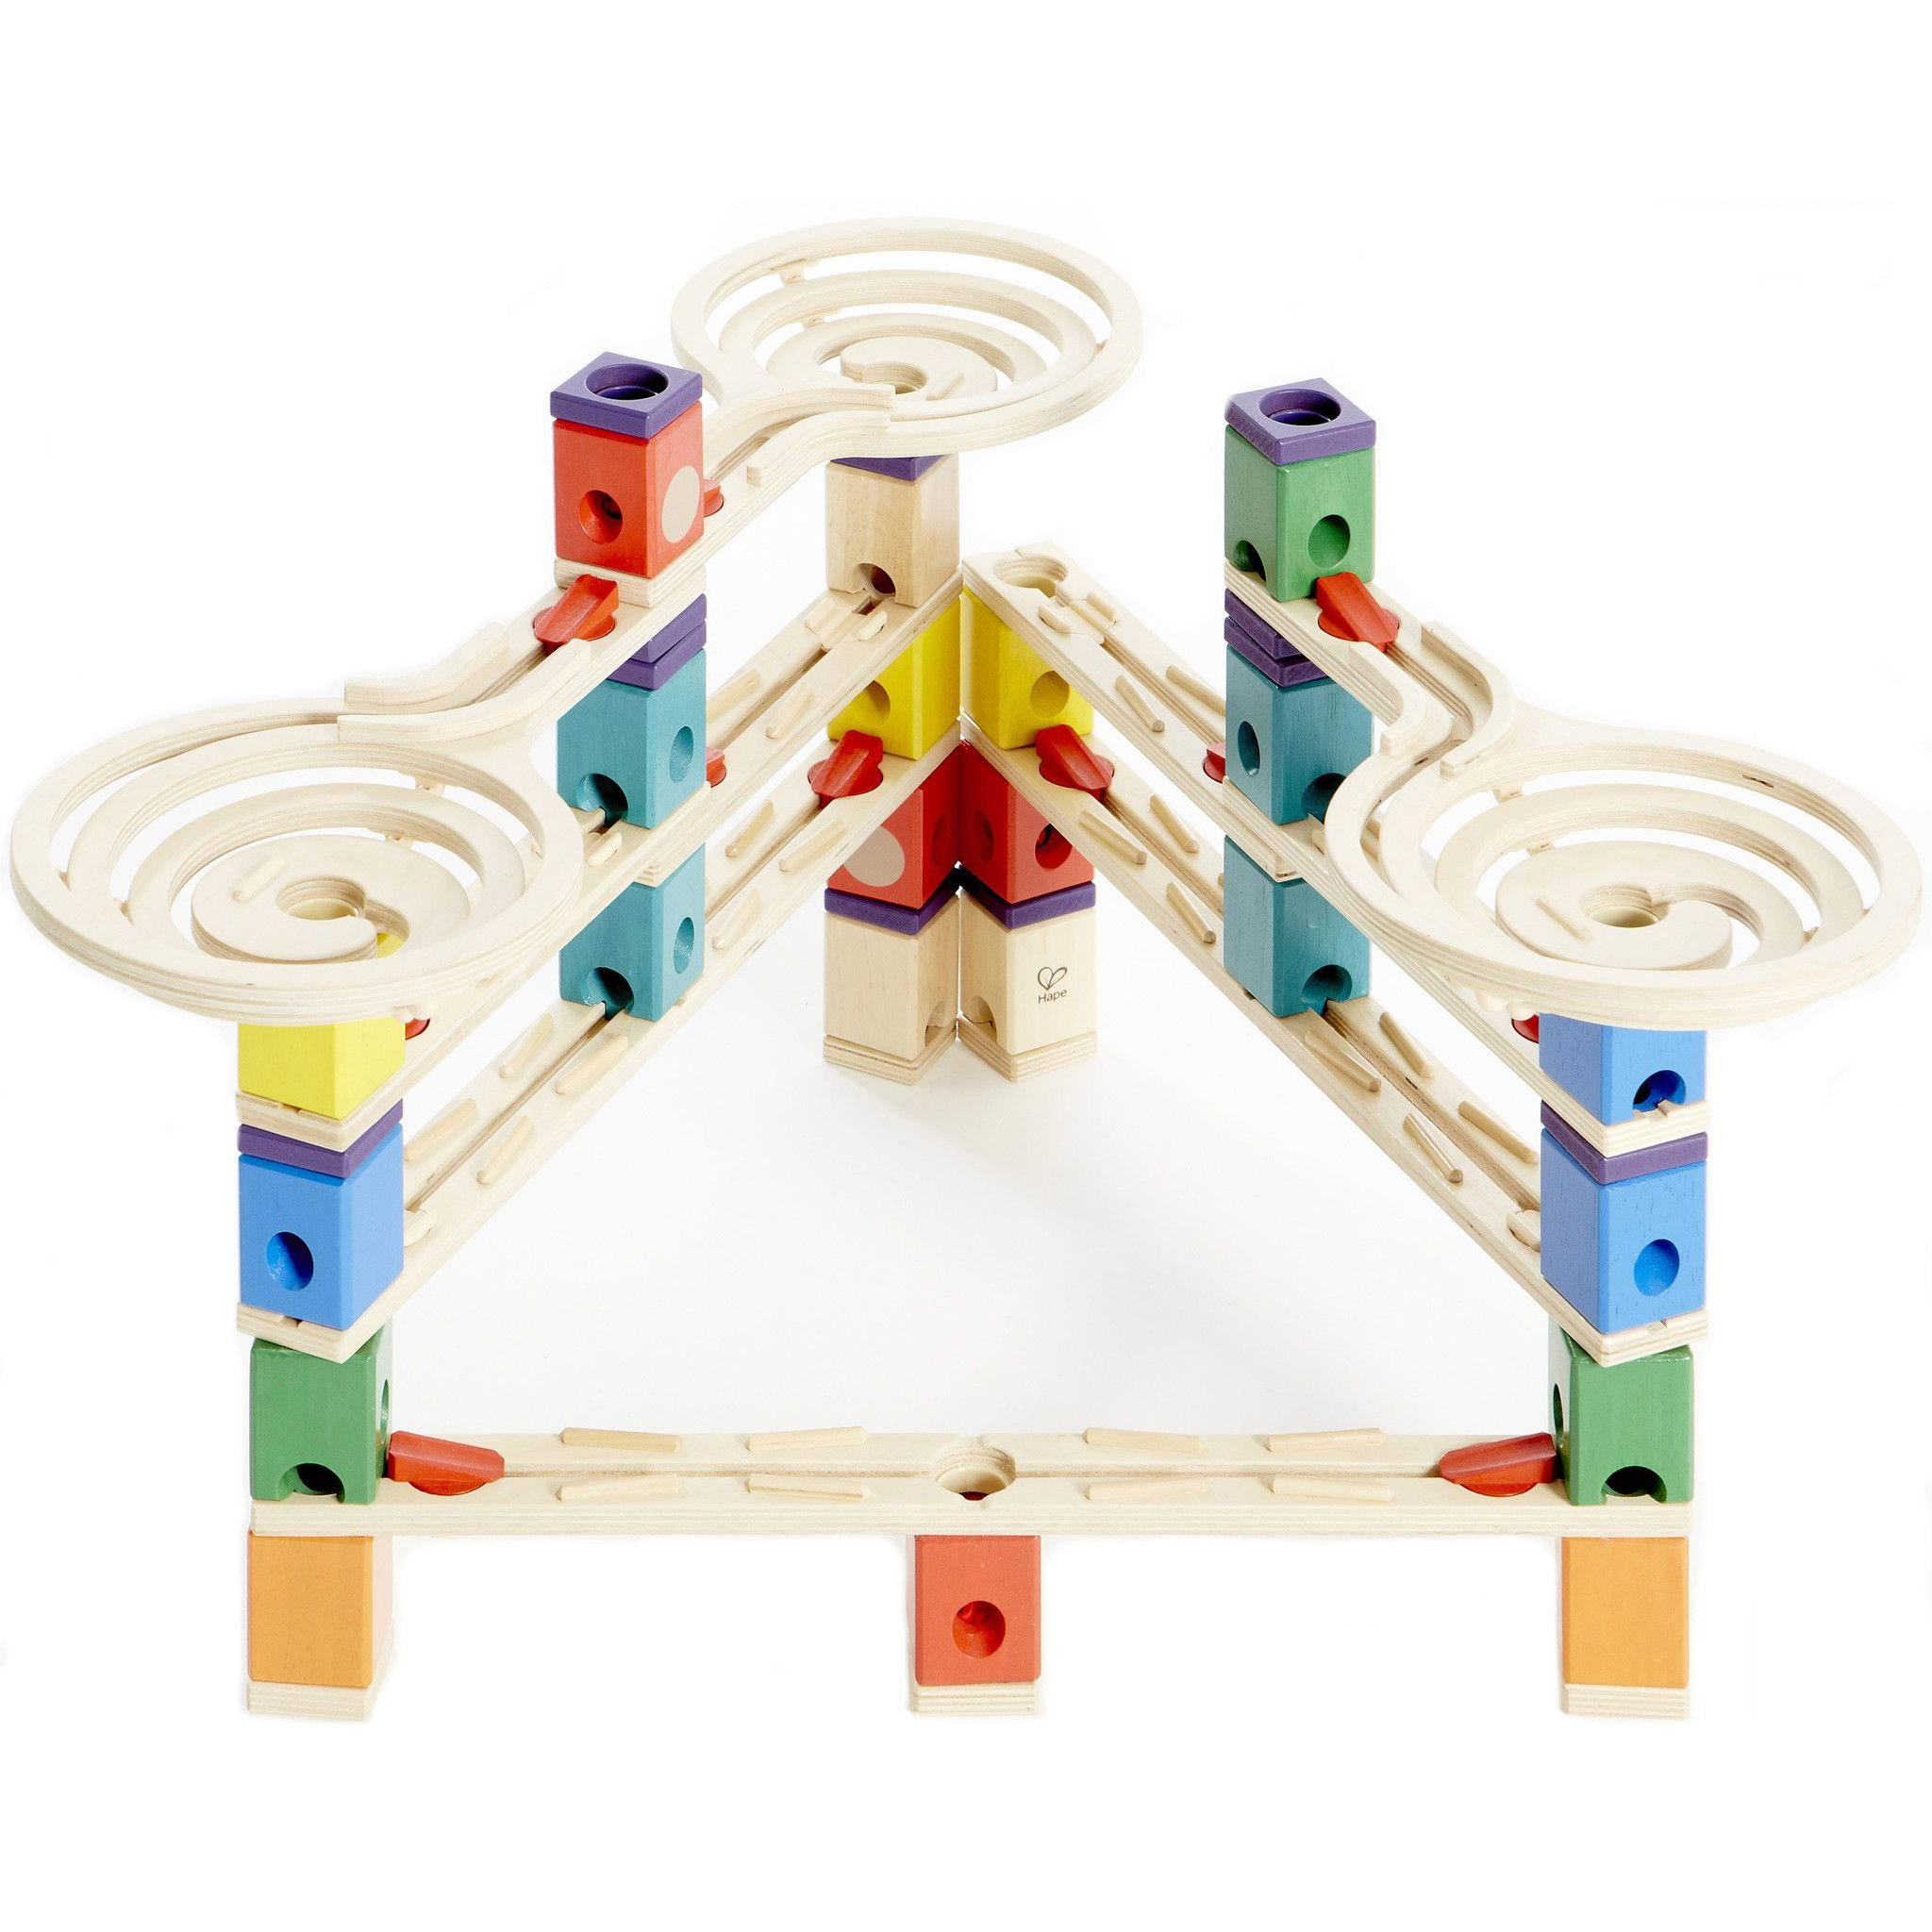 Hape Quadrilla Whirlwind Marble Run Wooden Game Toy Play Set Replacement Parts